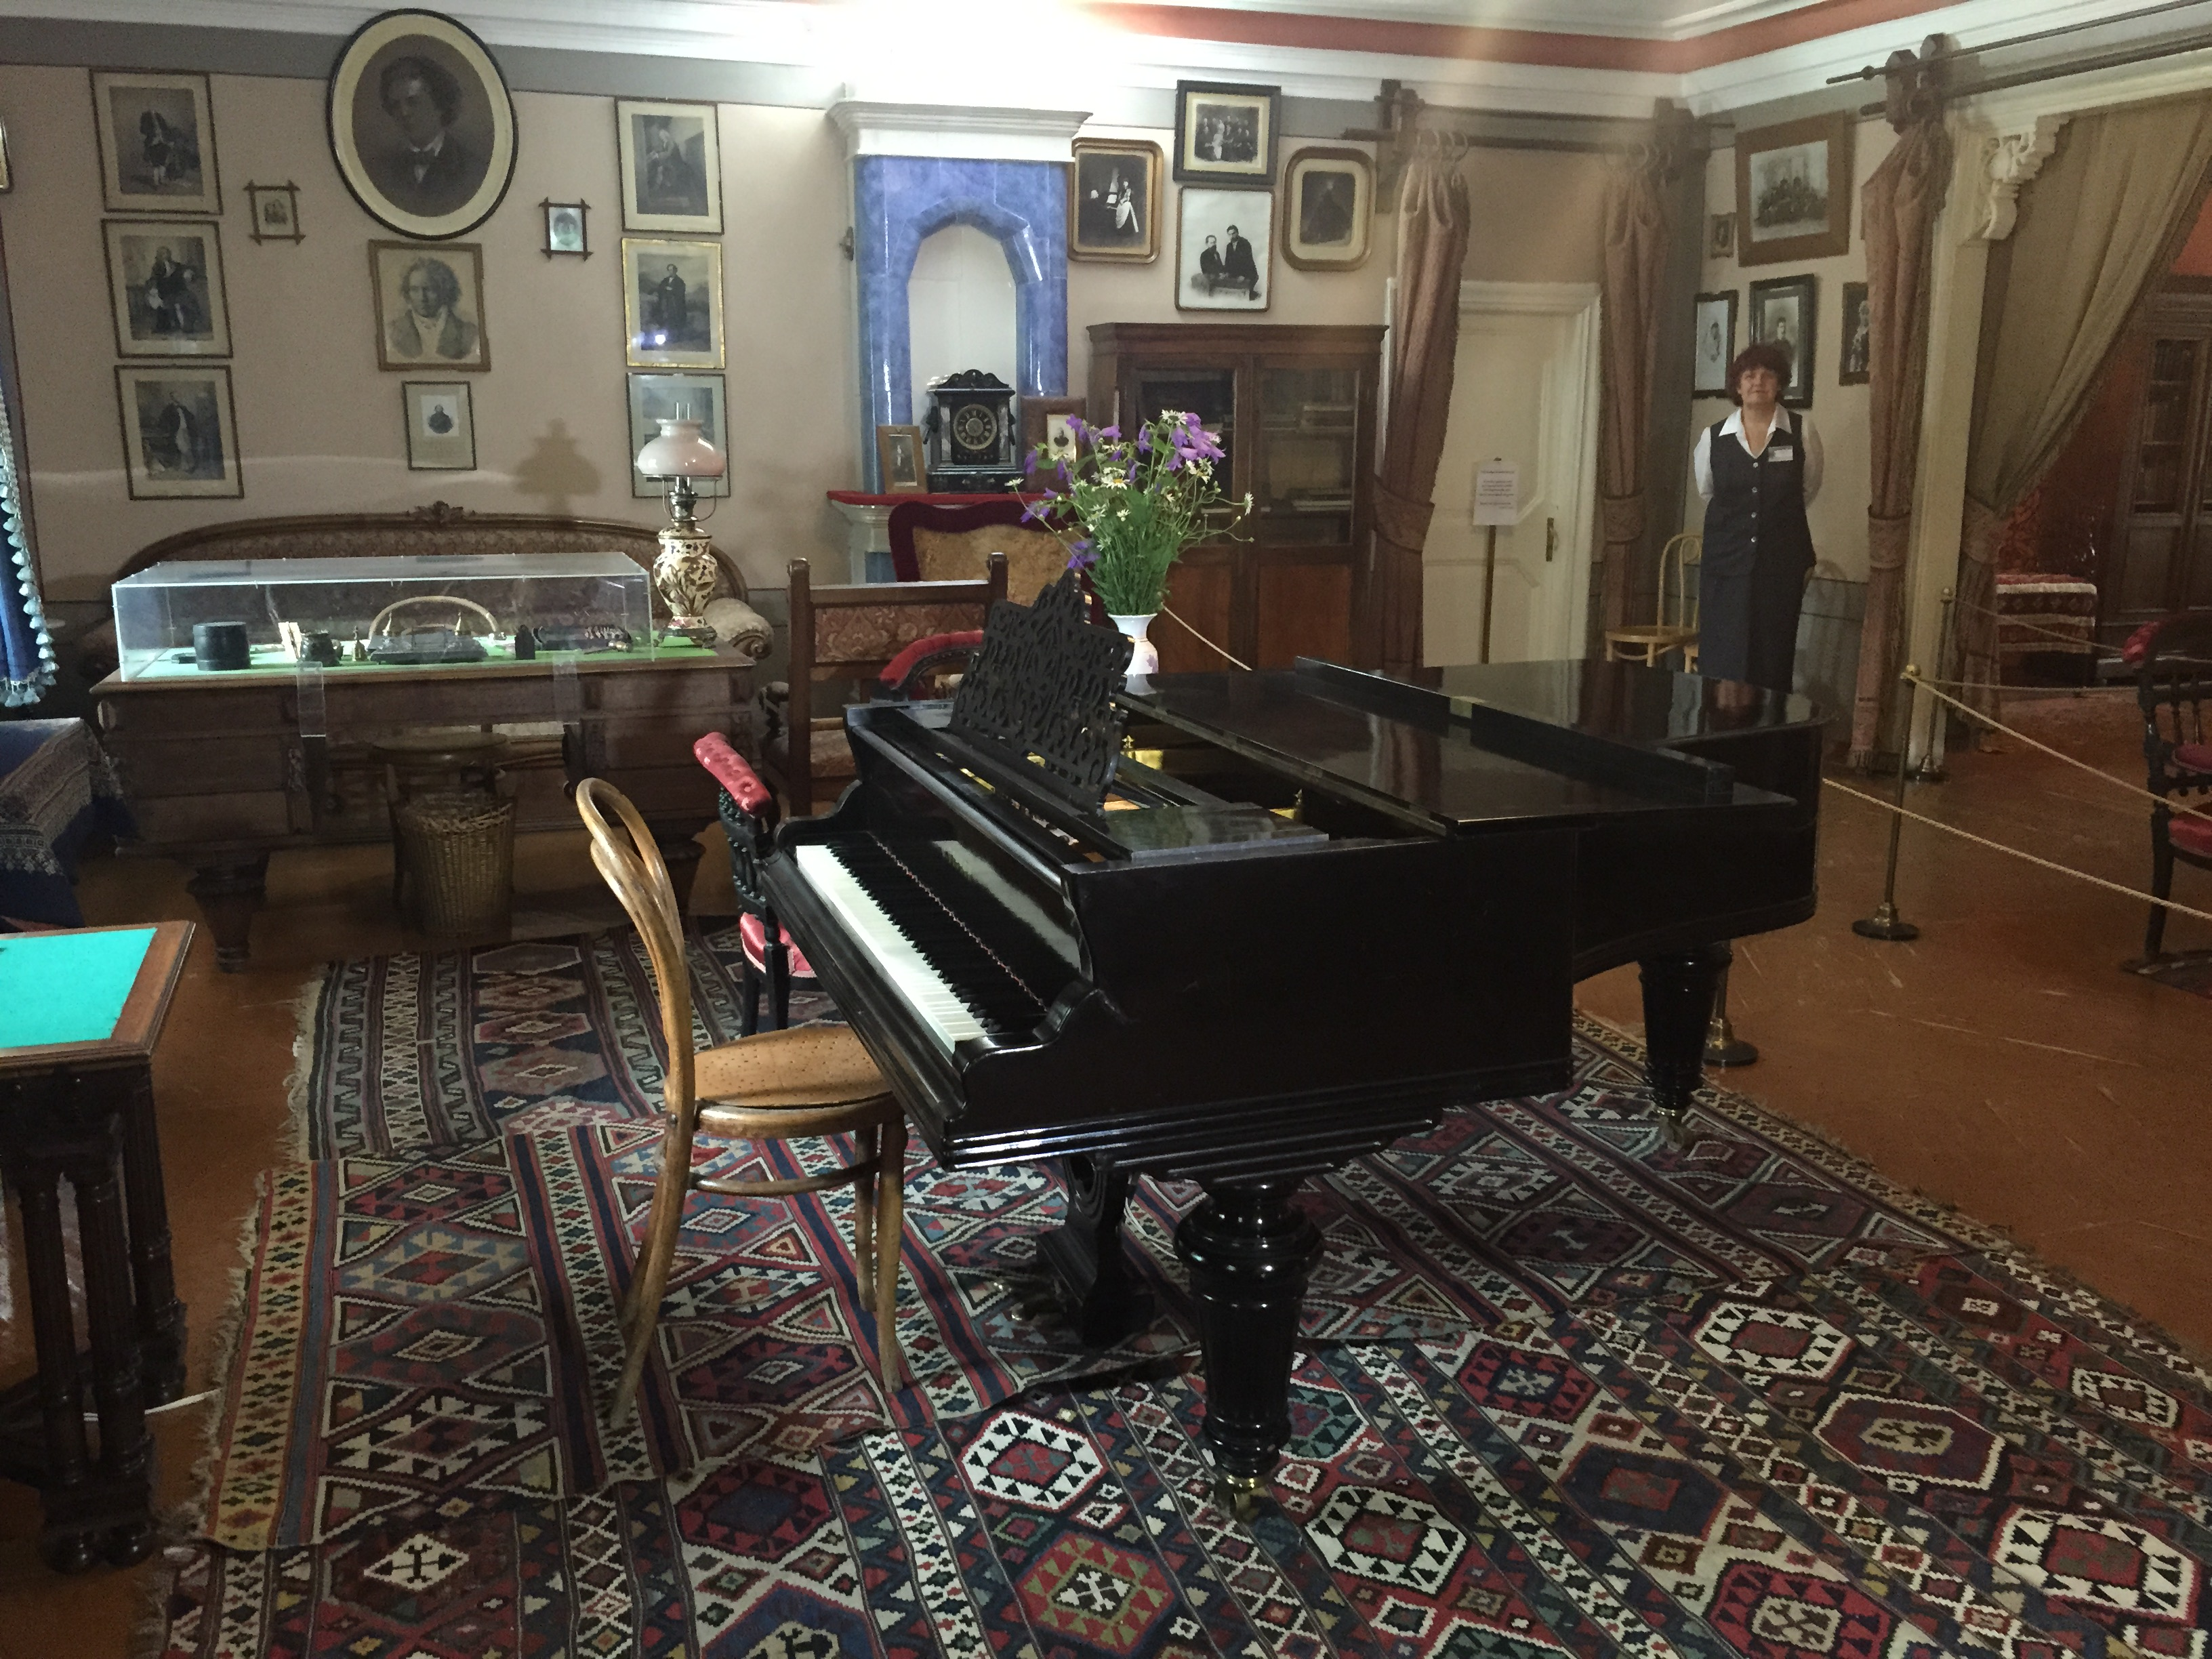 We took a tour round Tchaikovsky's house and heard a world-famous